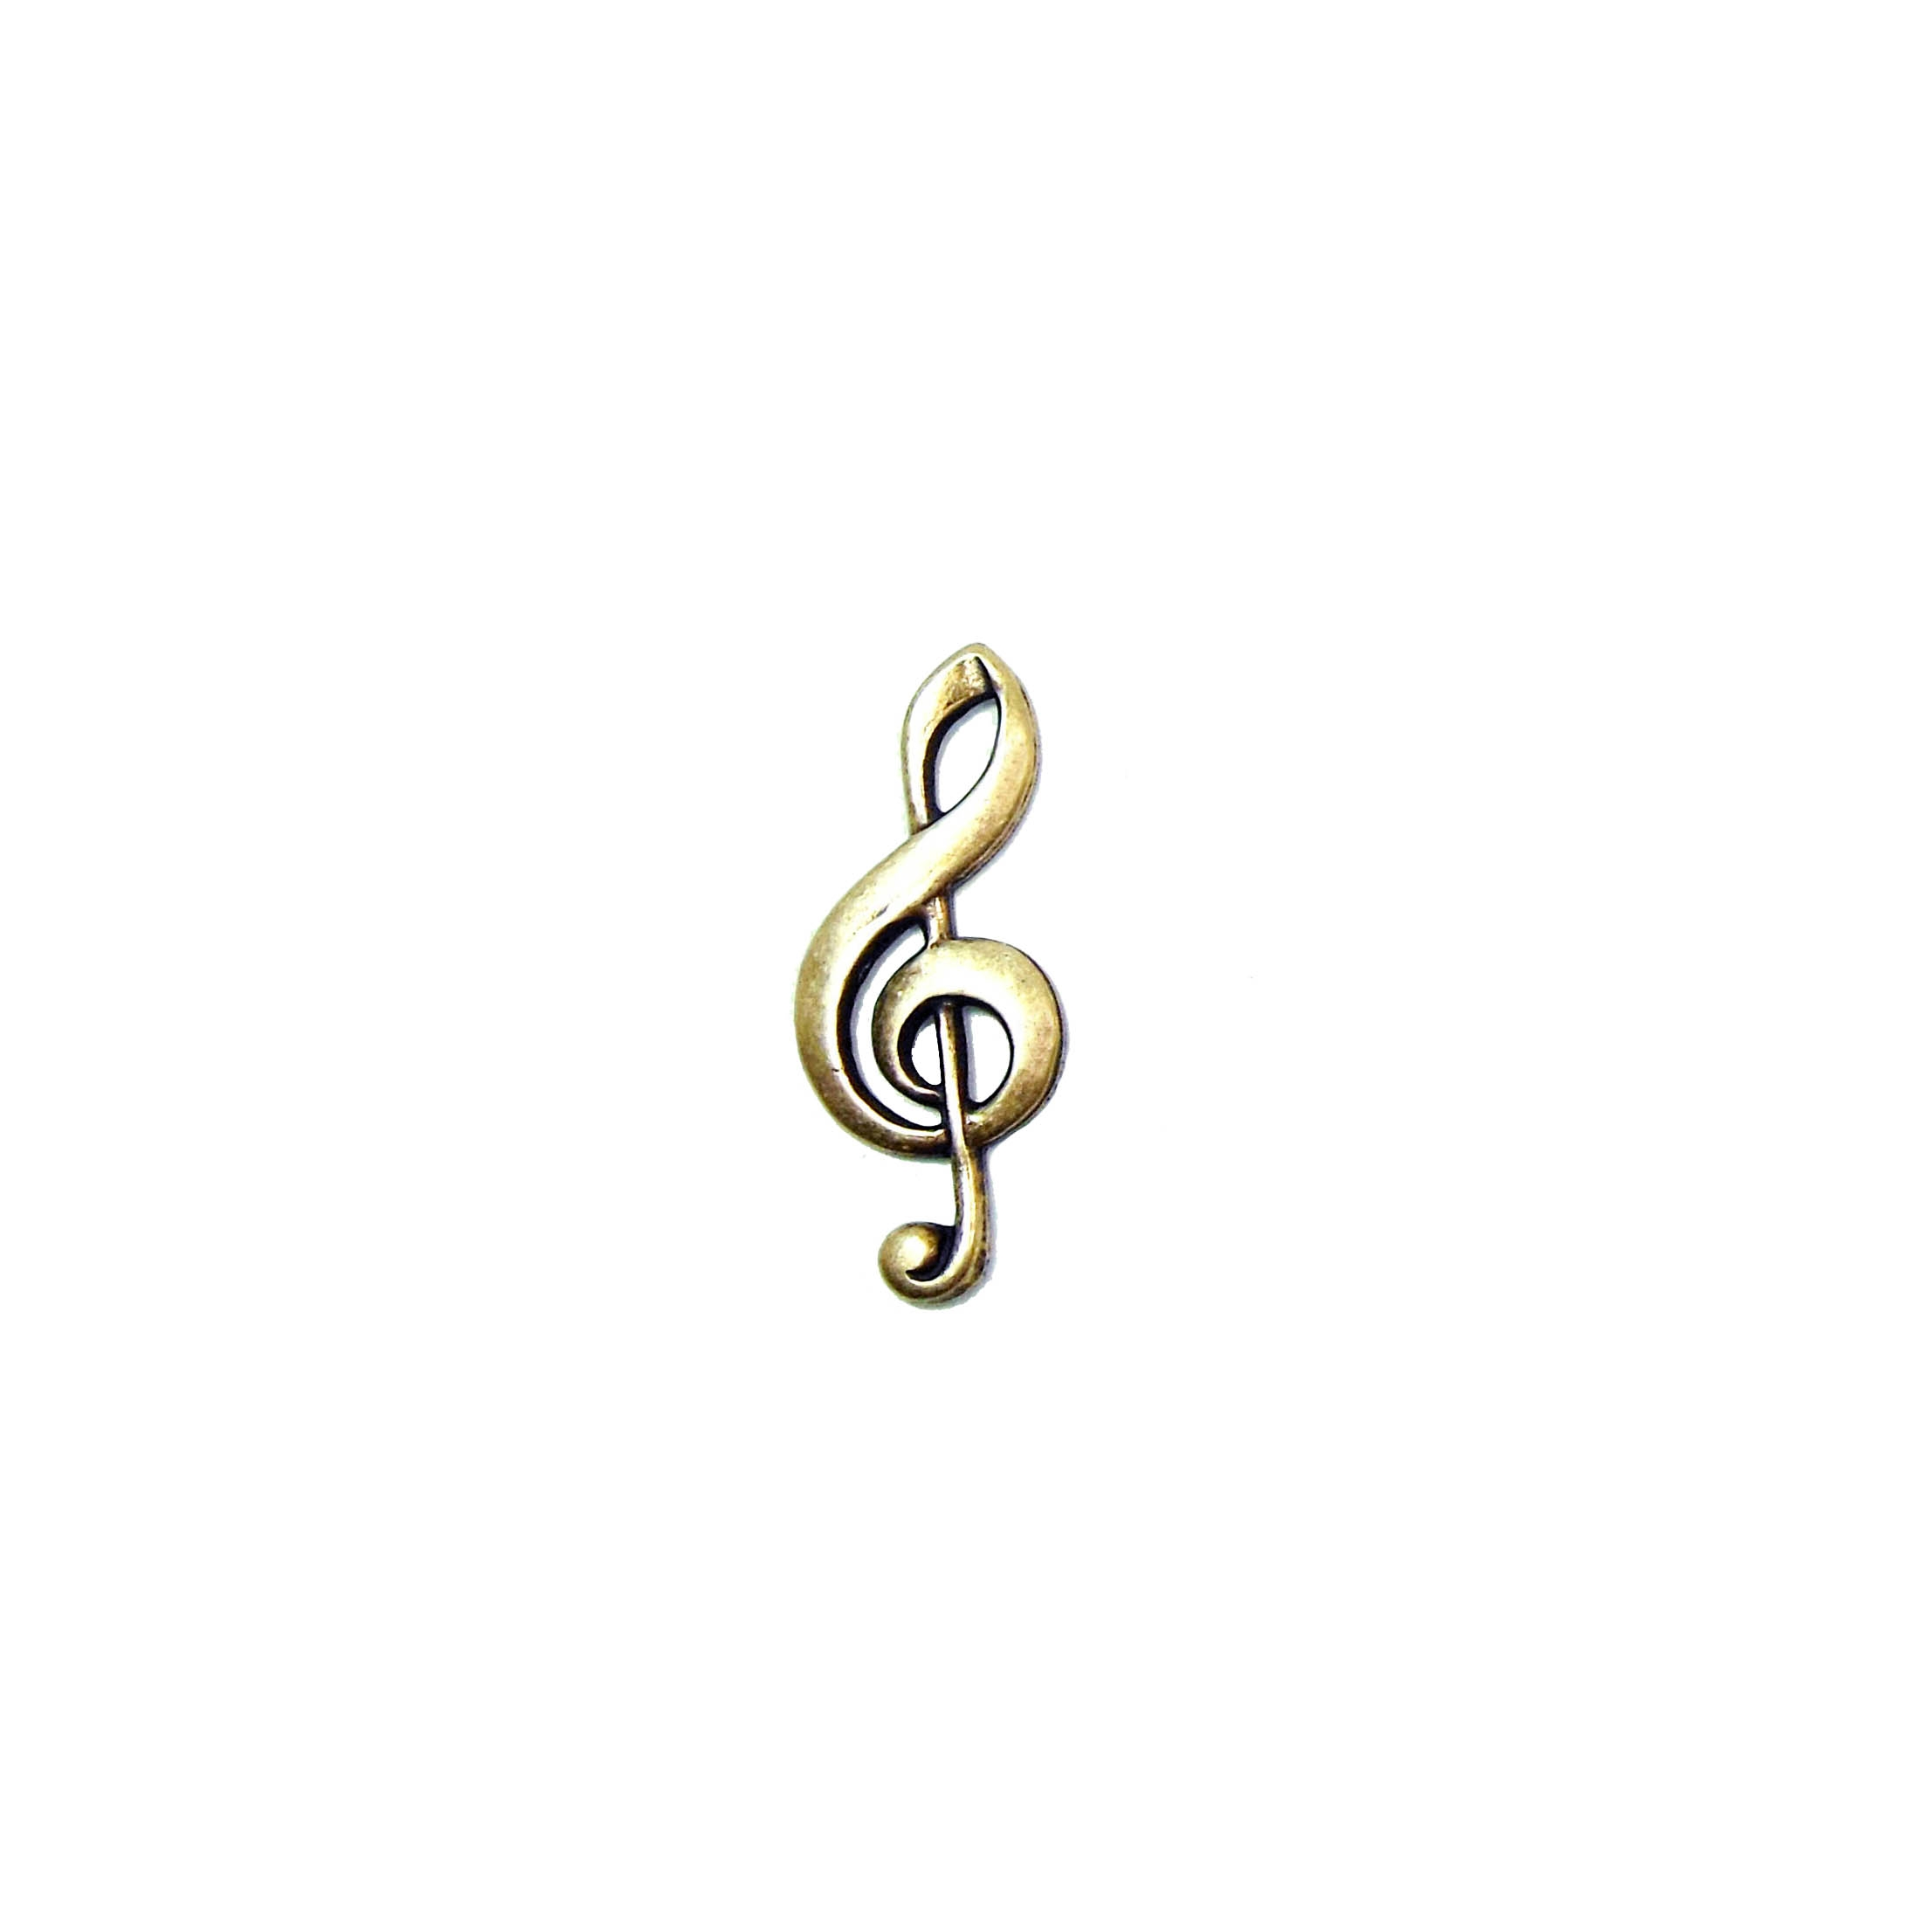 Treble Clef, Music Charm, Brass Charm, Brass Ox, US Made, Nickel Free, 17 x 9mm, Brass Stamping, Music Note, Pendent, Charm, Design Element, Embellishments, Jewelry Findings, B'sue Boutiques, Made in USA, 02174